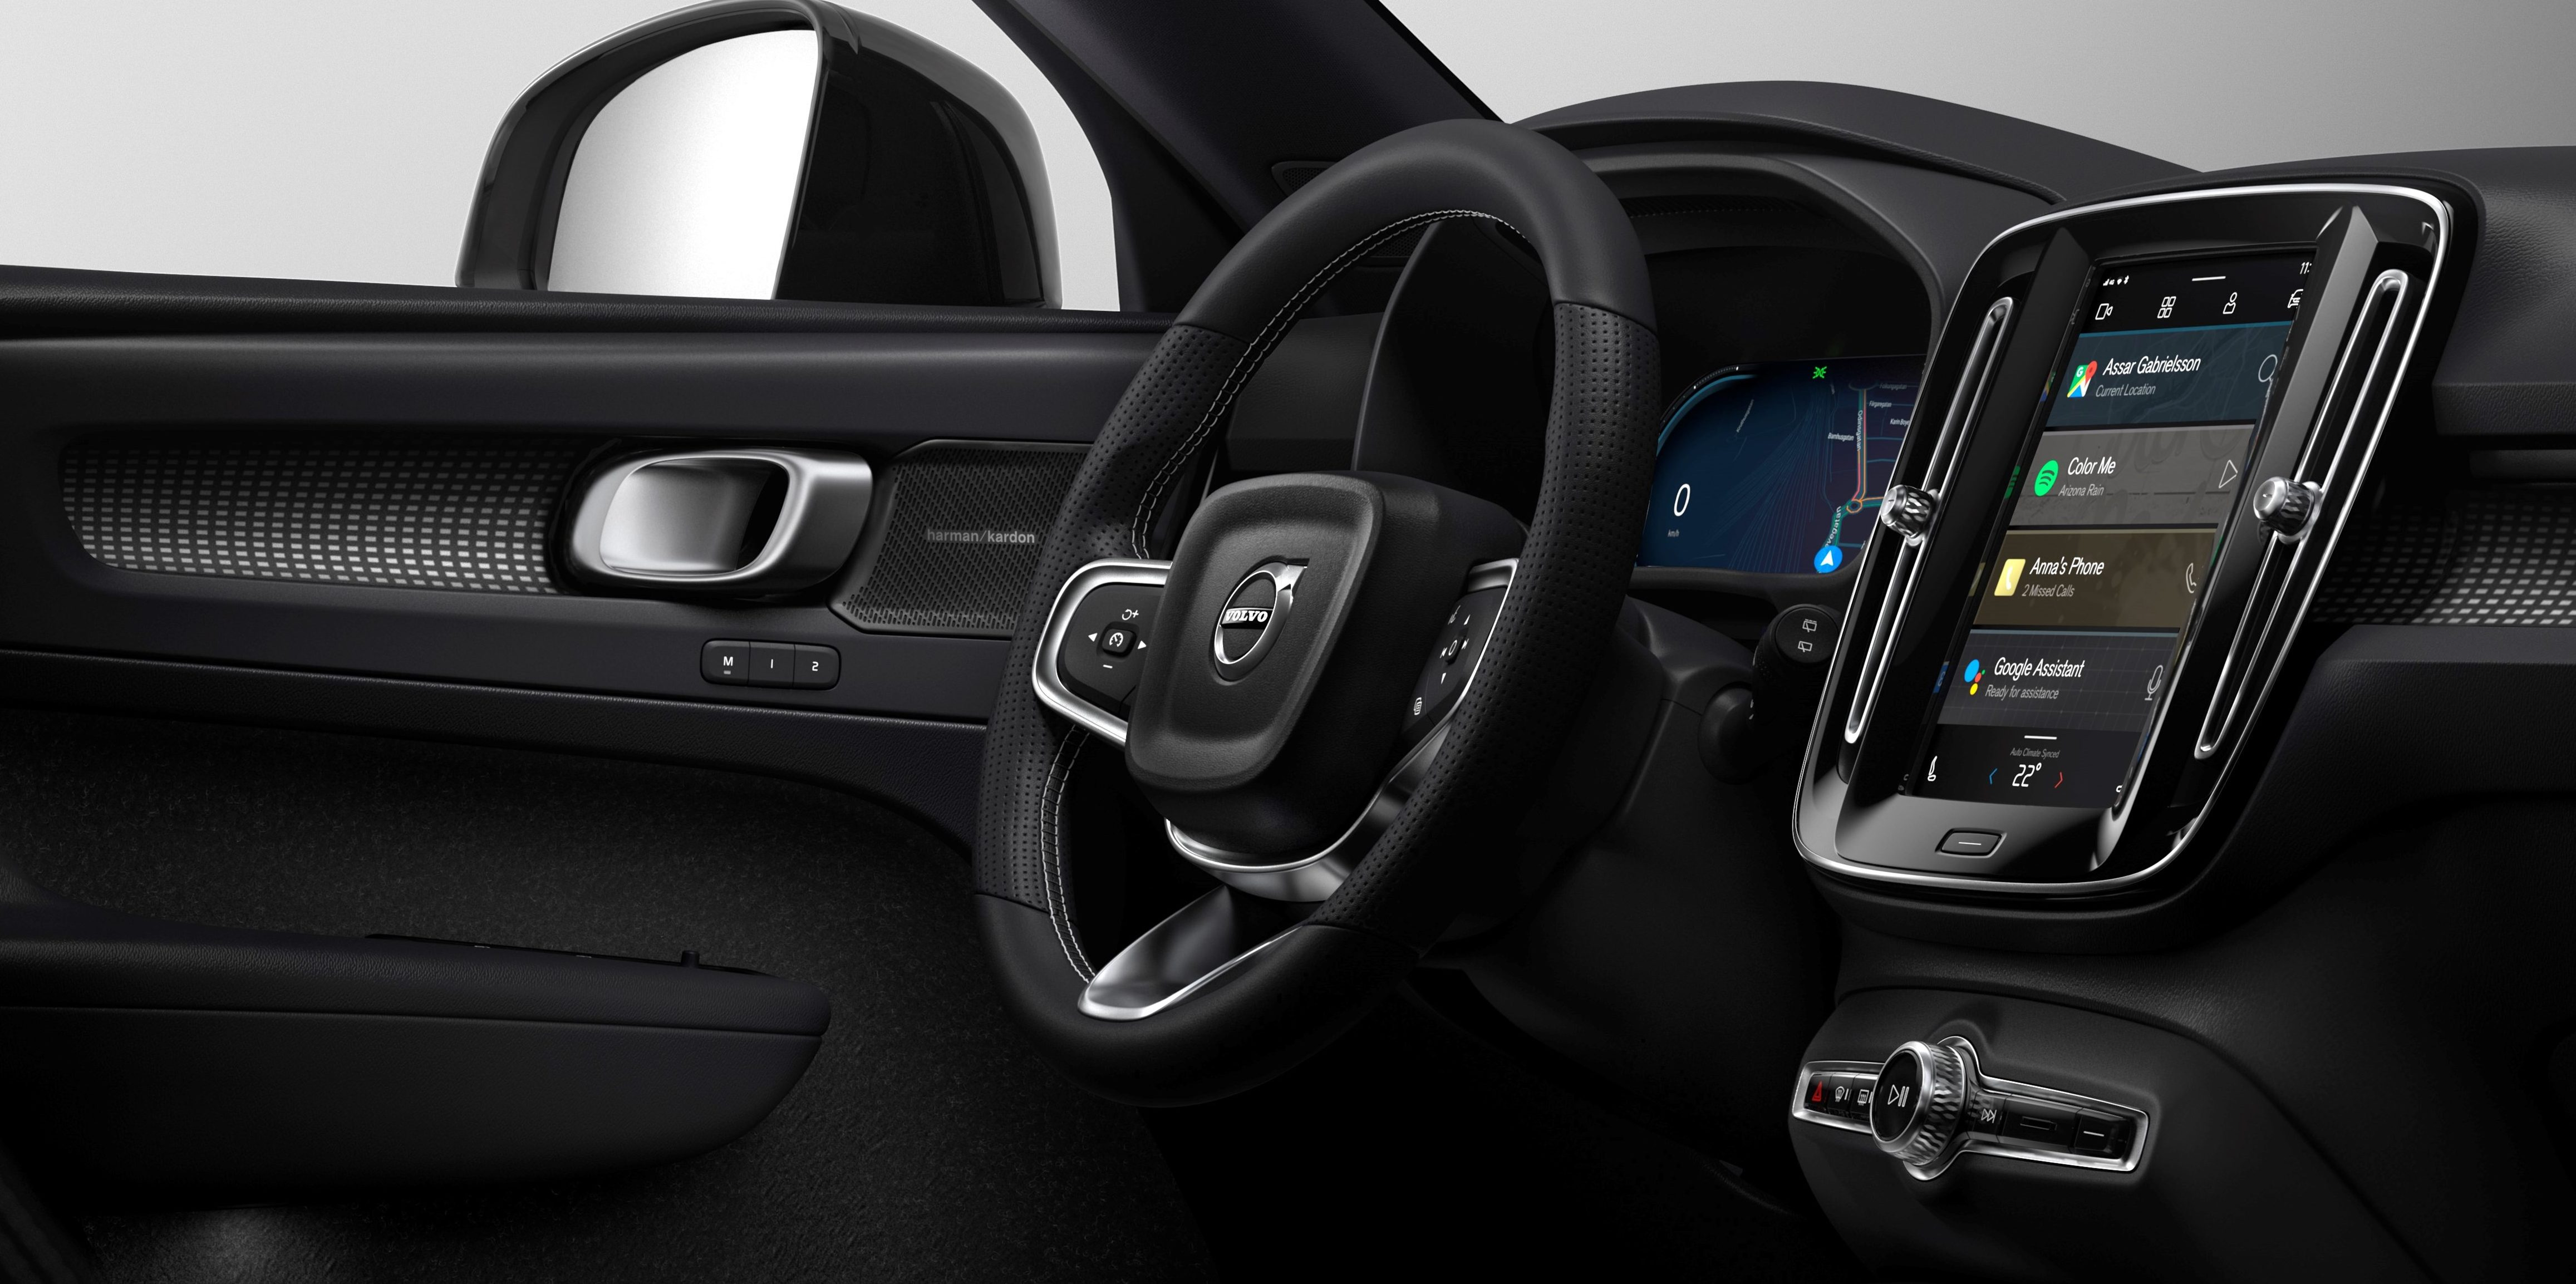 Volvo unveils electric XC40's infotainment system powered by